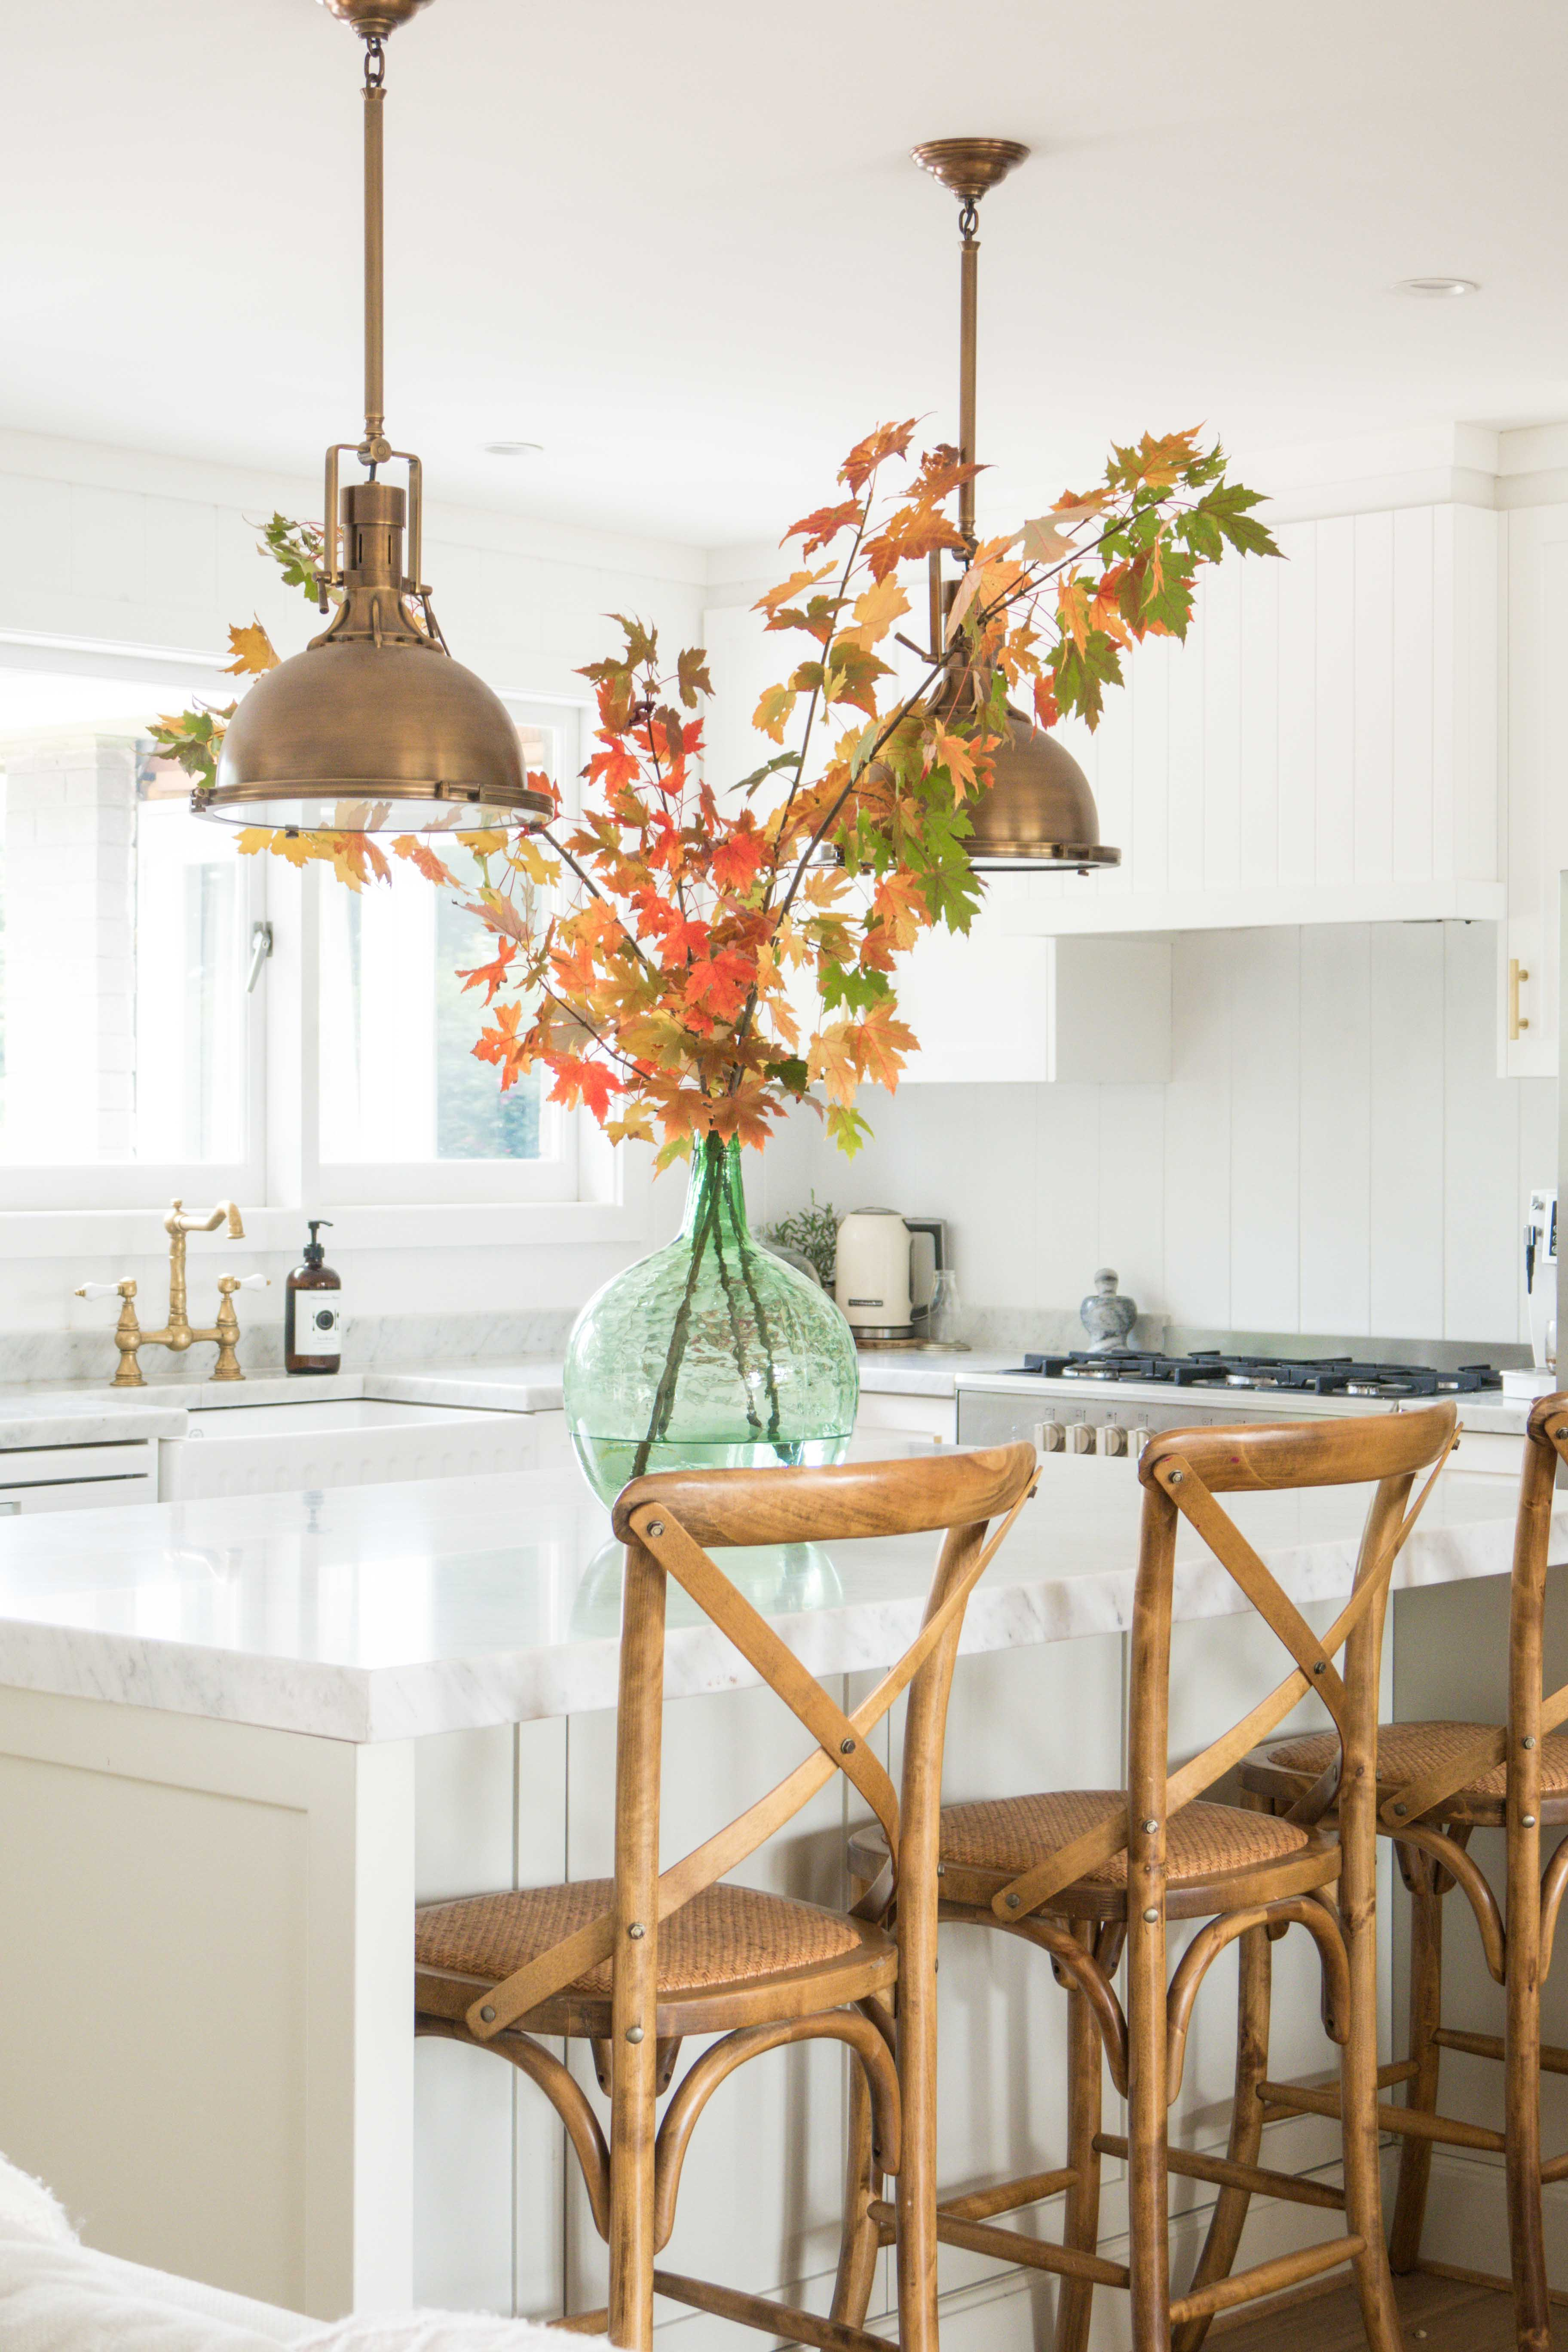 cottonwood-autumn-leaves-kitchen